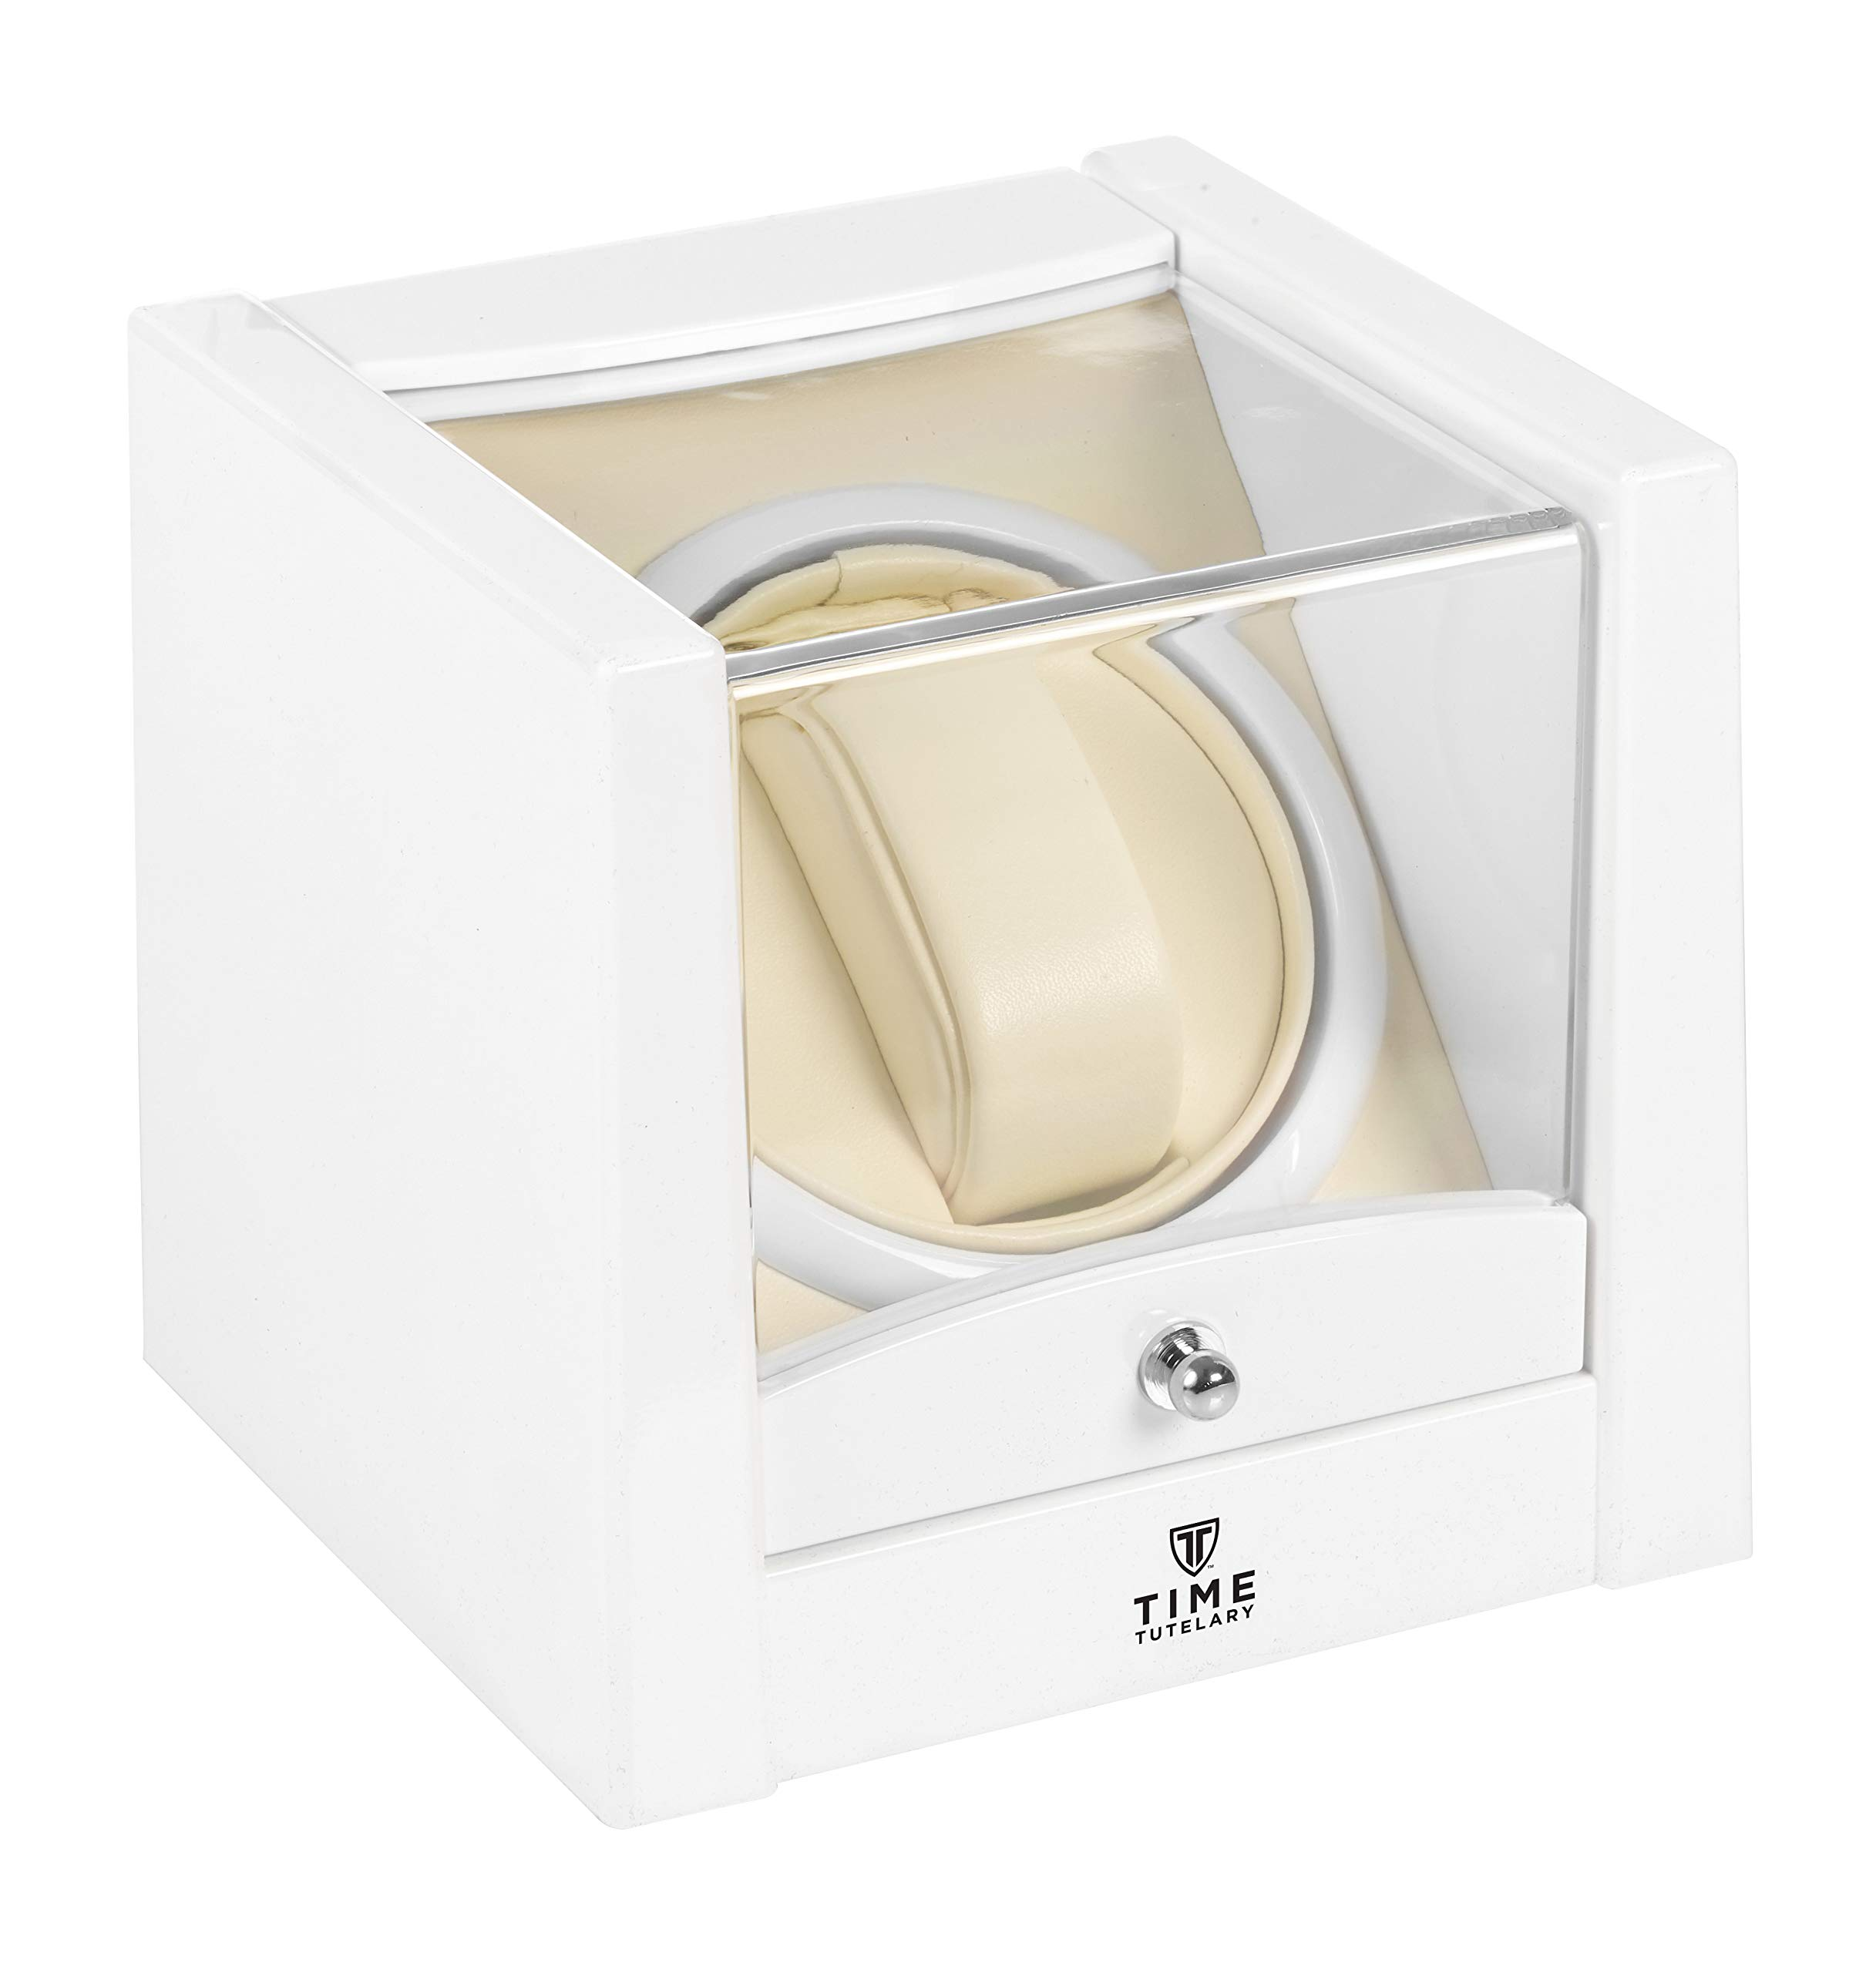 Time Tutelary KA079 Automatic Single One Watch Winder White by Time Tutelary (Image #2)